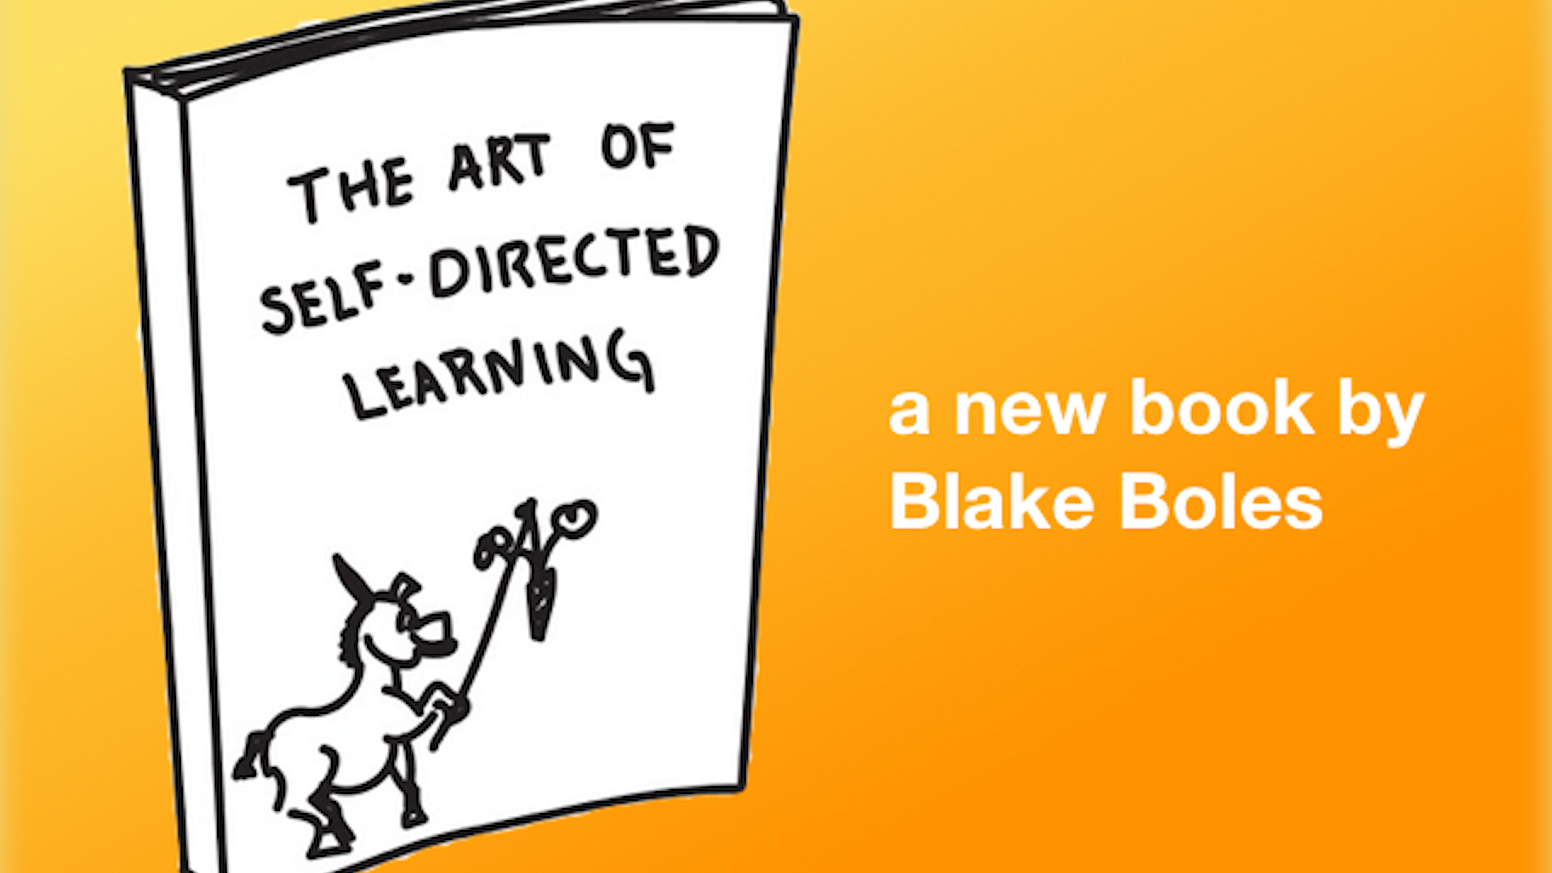 The art of self directed learning by blake boles kickstarter a new book with 23 illustrated stories about giving yourself an unconventional education in a conventional solutioingenieria Choice Image